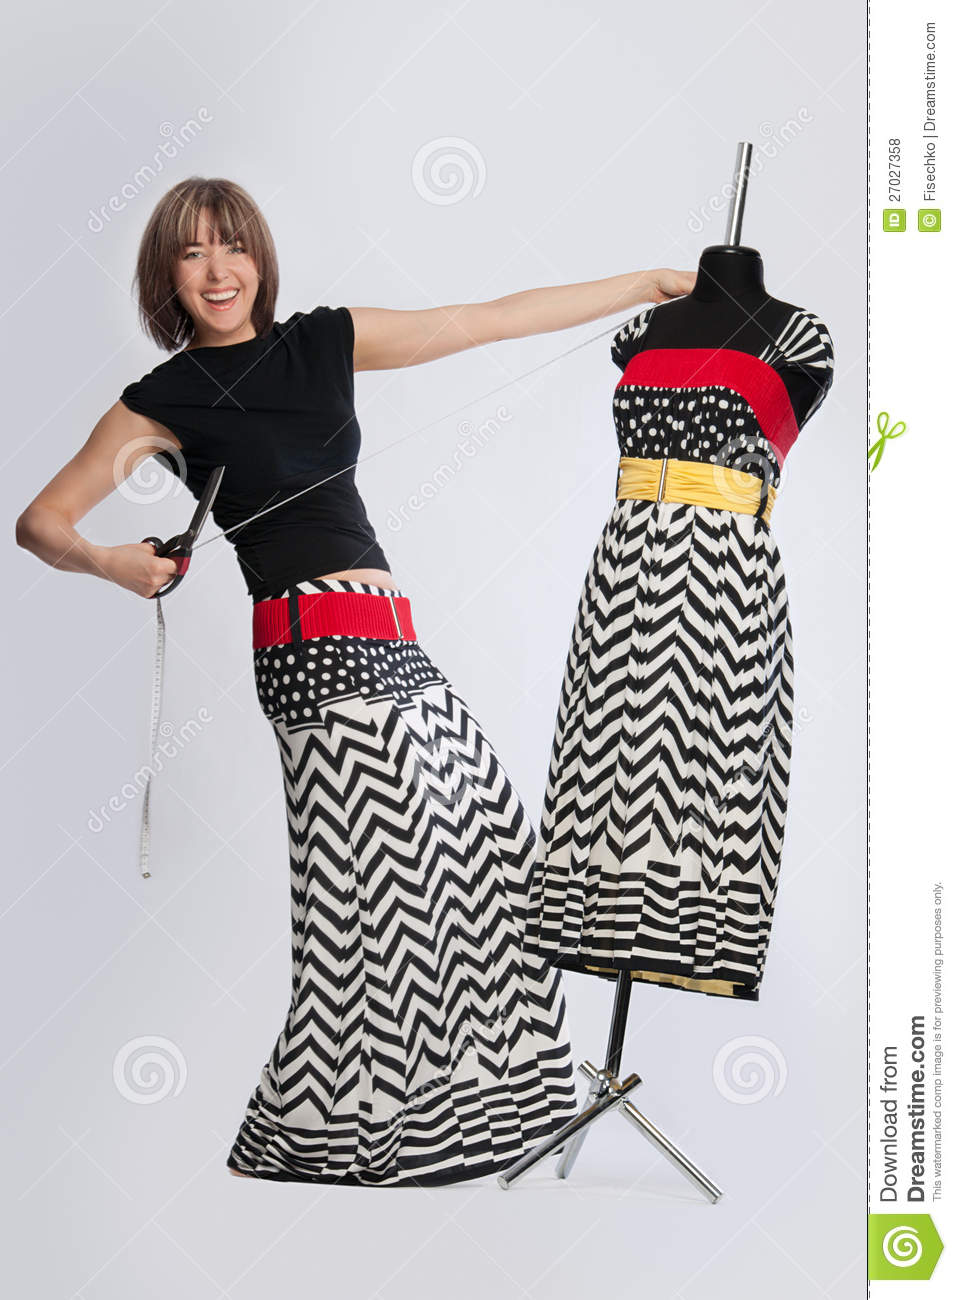 Fashion Designer Playing With Mannequin Royalty Free Stock